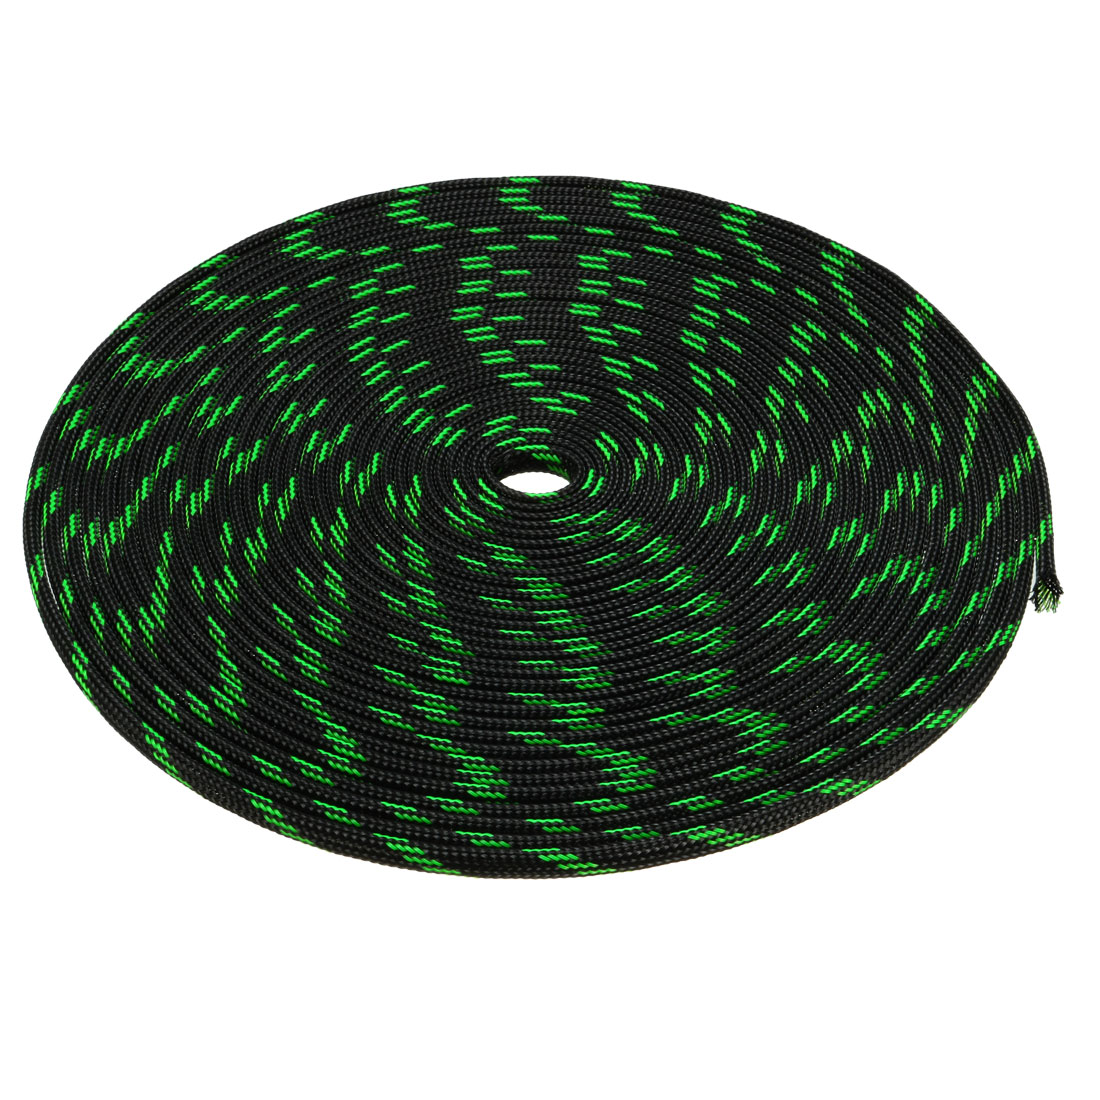 4mm Dia Tight Braided PET Expandable Sleeving Cable Wrap Sheath Black Green 32ft